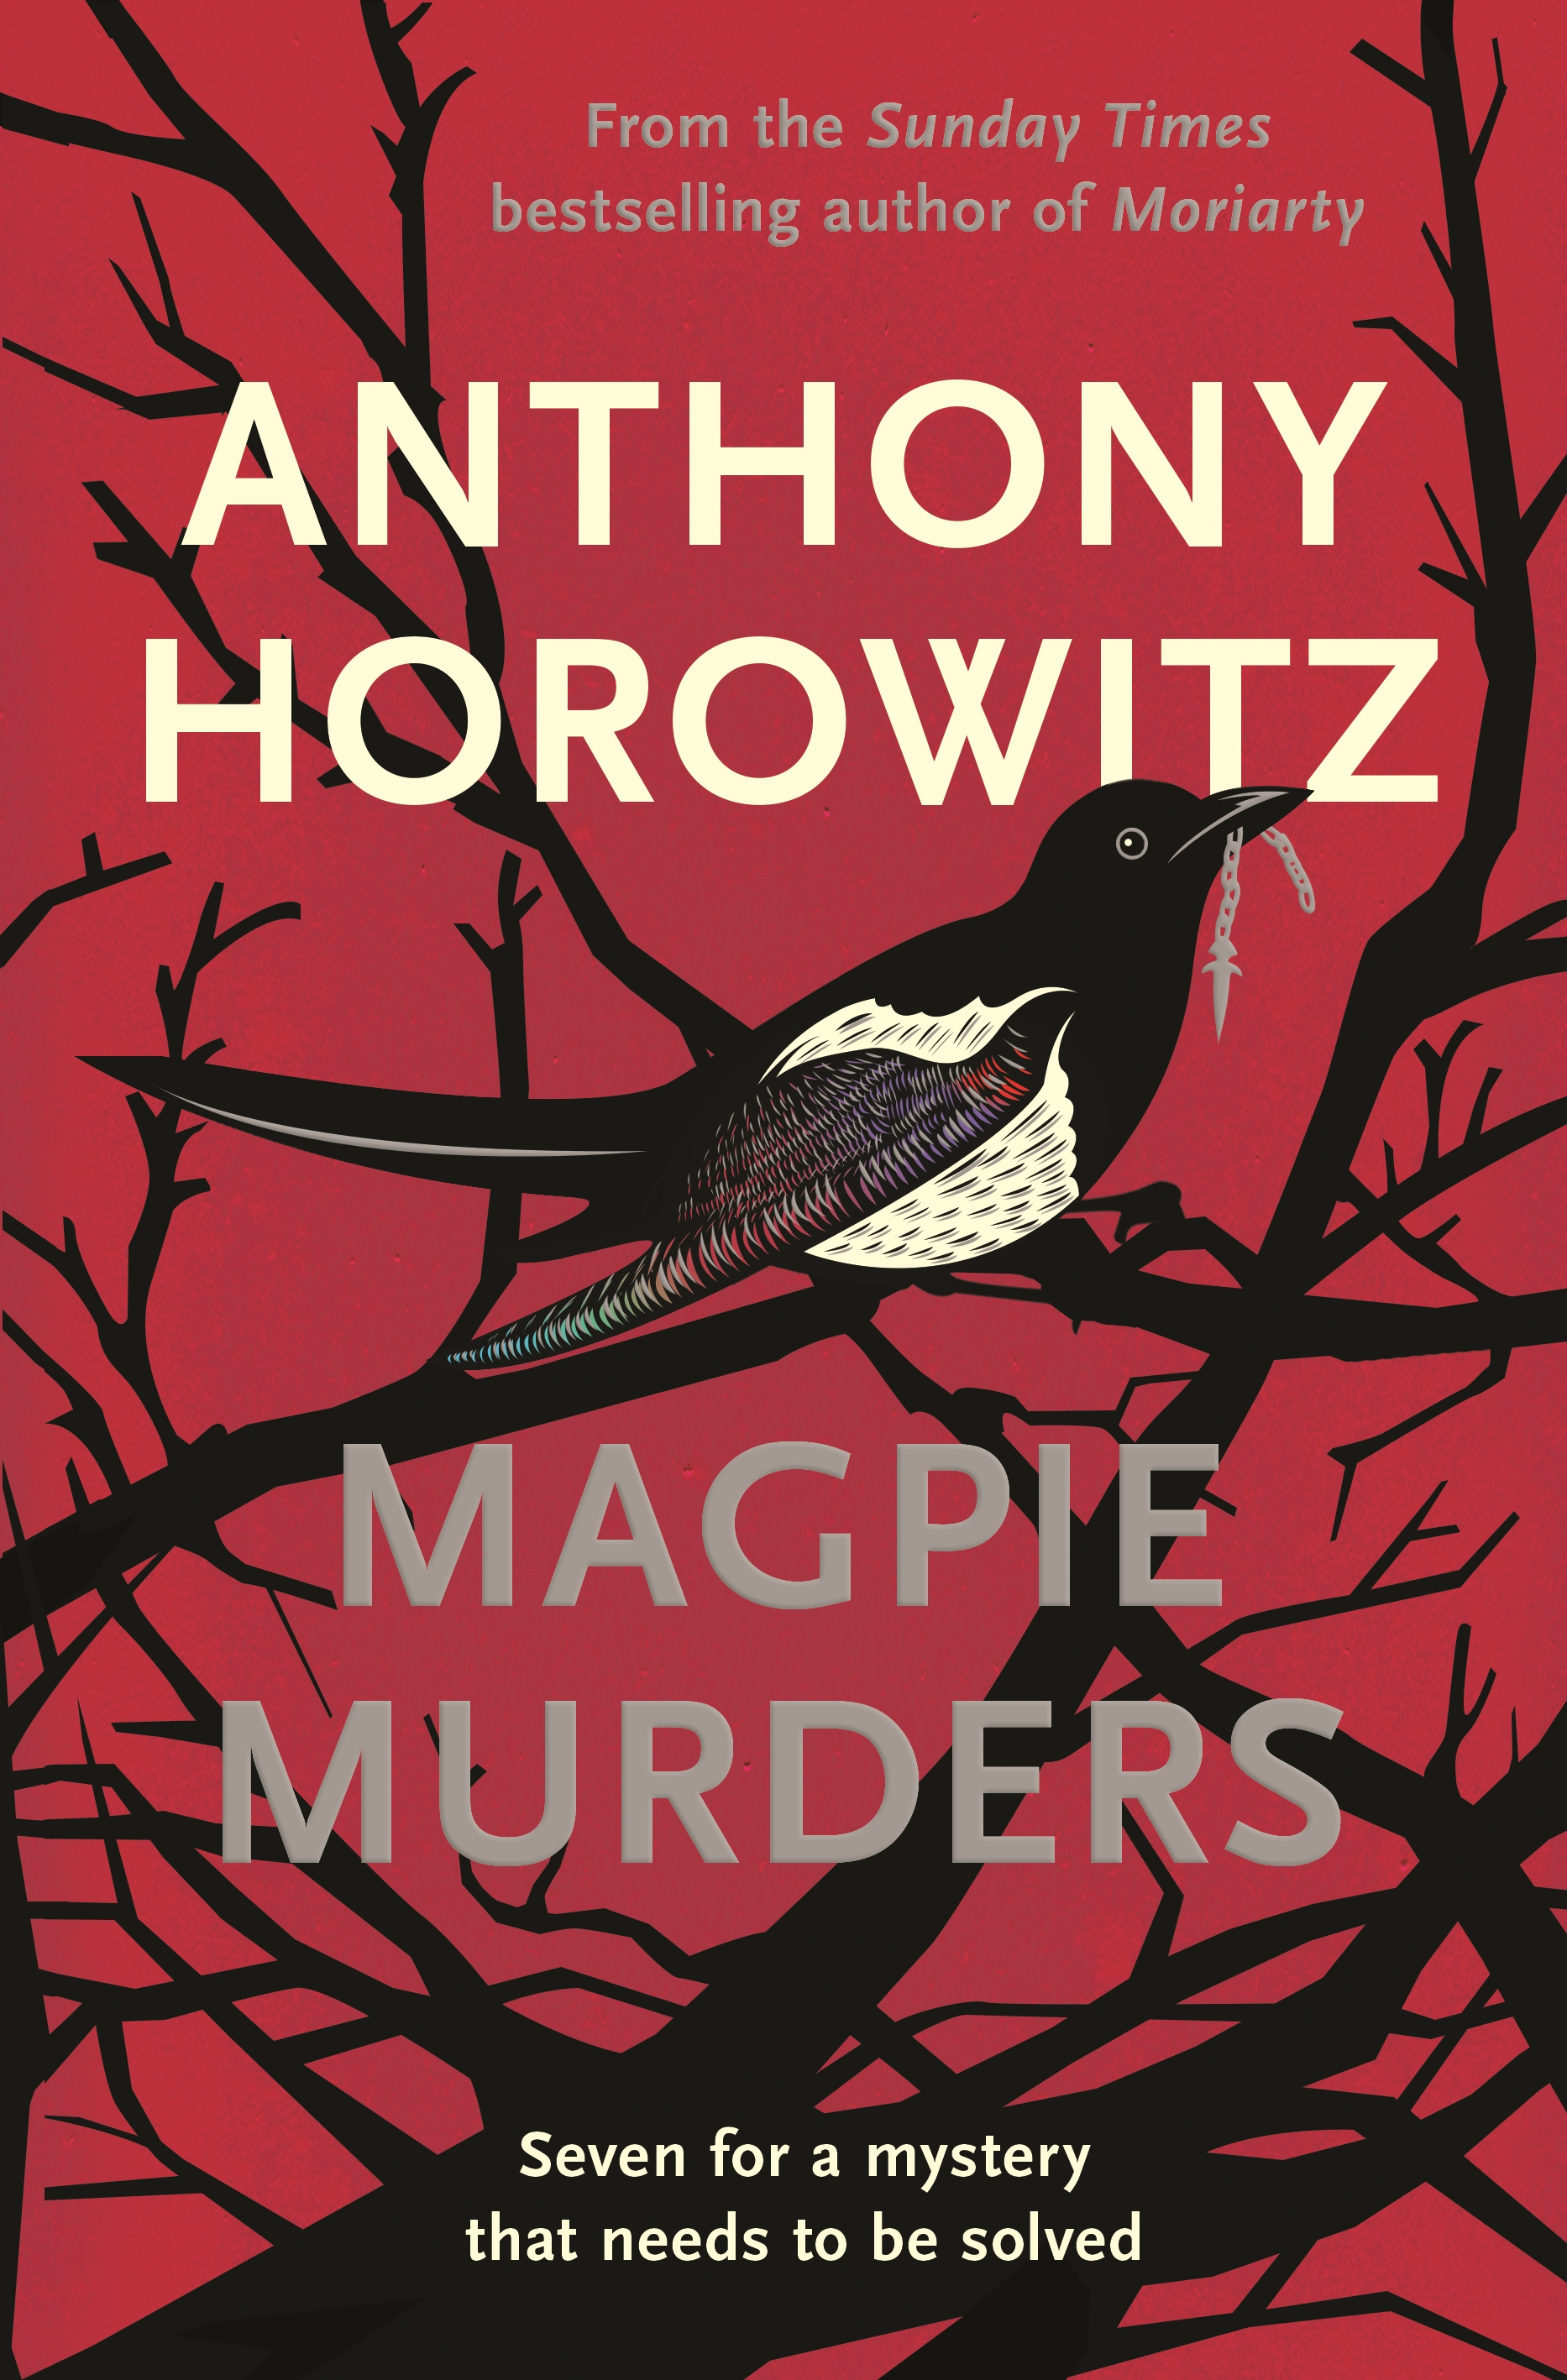 Magpie Murders, parody country crime novel by Anthony Horowitz reviewed by Charles Harris